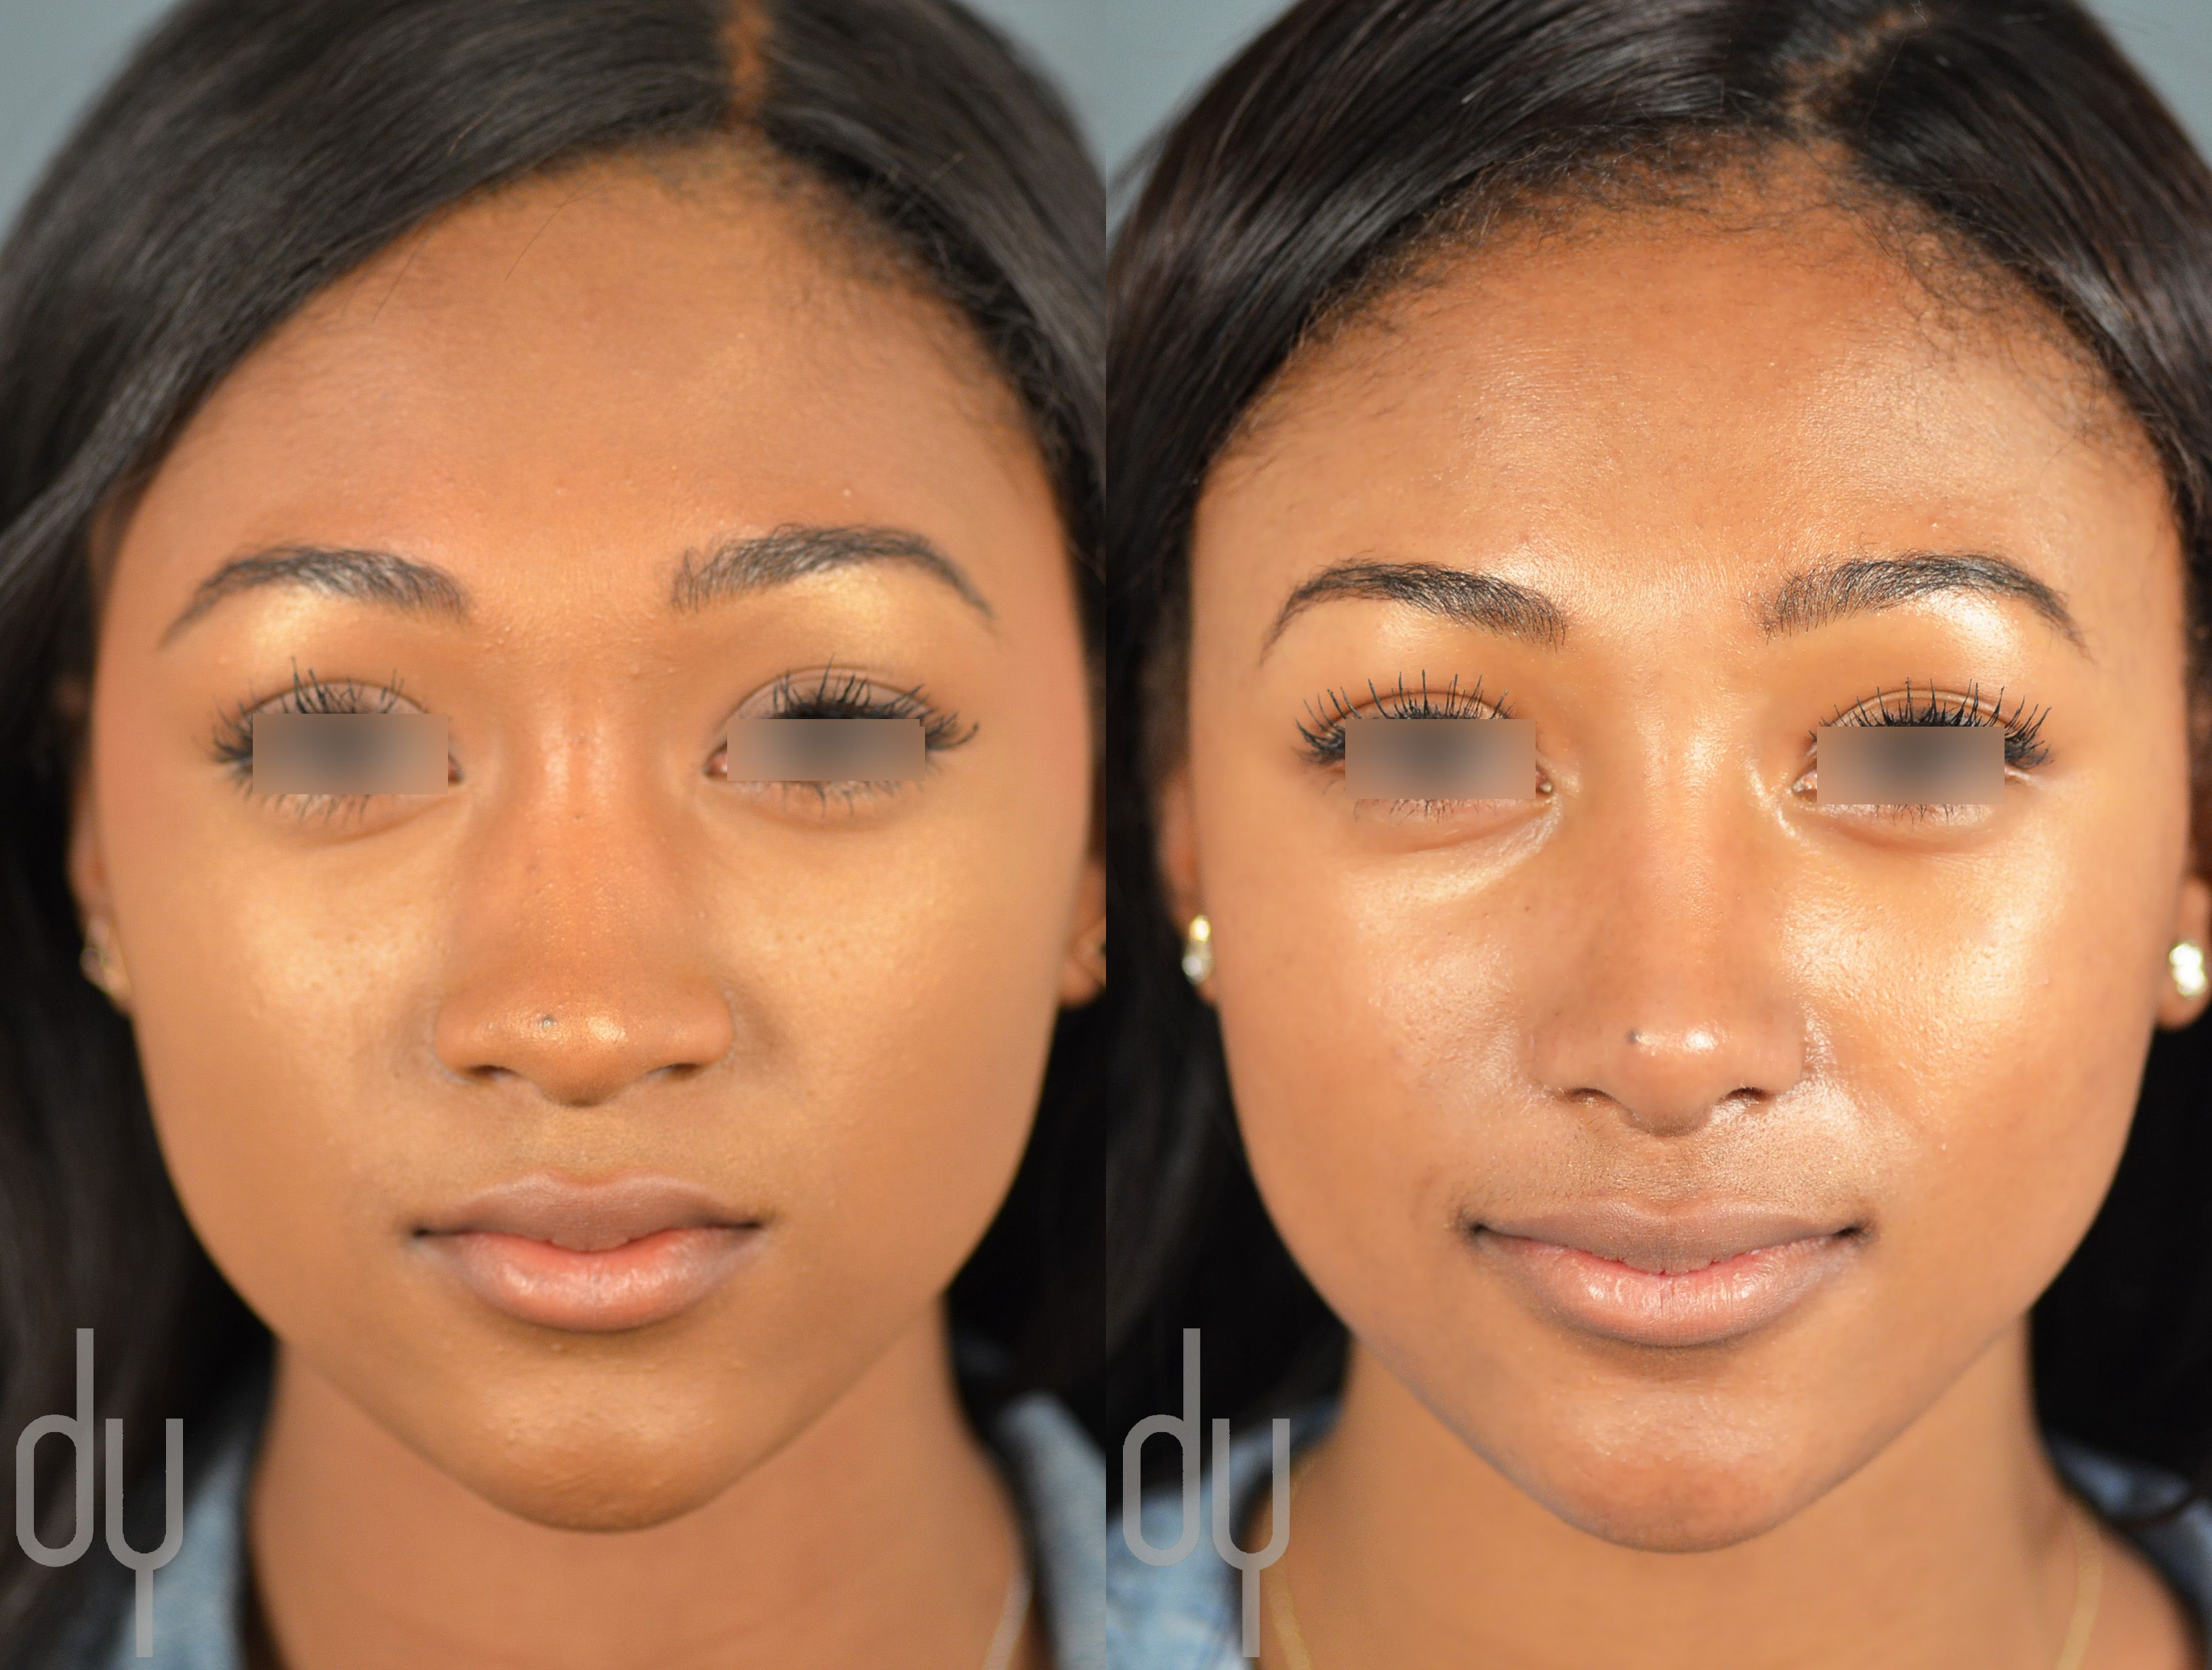 best ideas about rhinoplasty before and 18 best ideas about rhinoplasty 2019 before and after pictures donald o connor and 25 years old